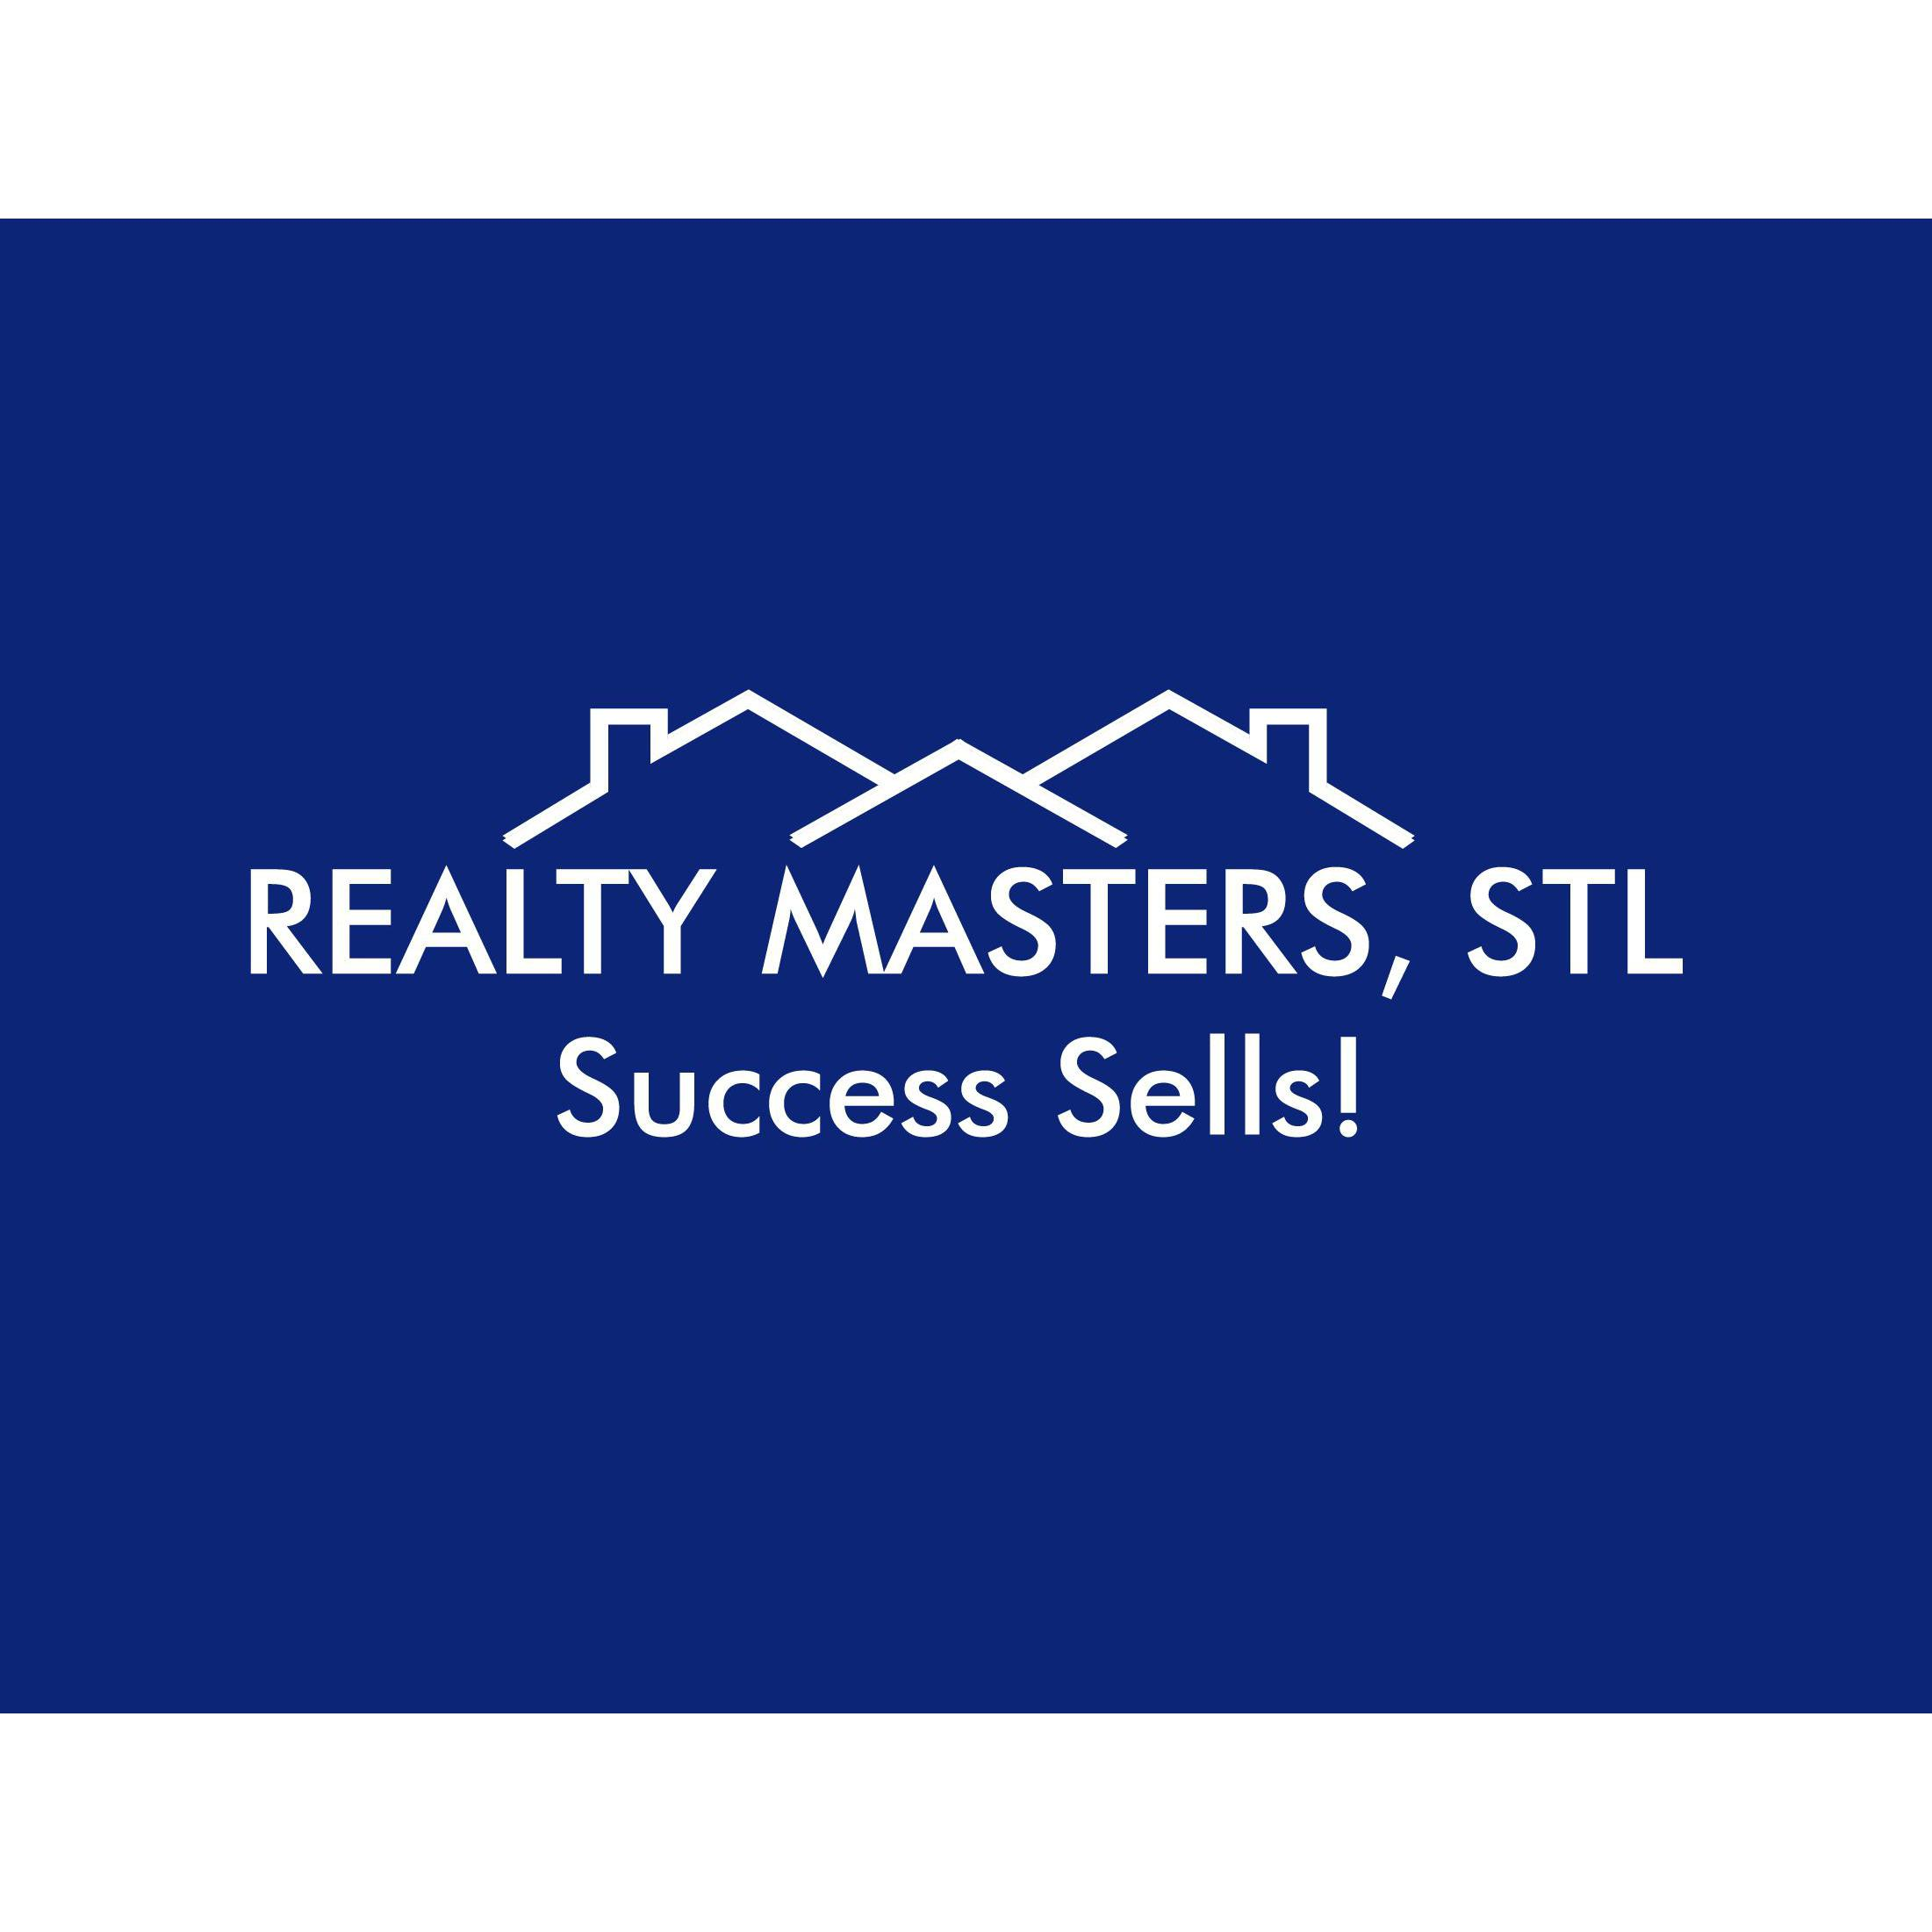 REALTY MASTERS, STL - Manchester, MO 63011 - (636)220-7830 | ShowMeLocal.com